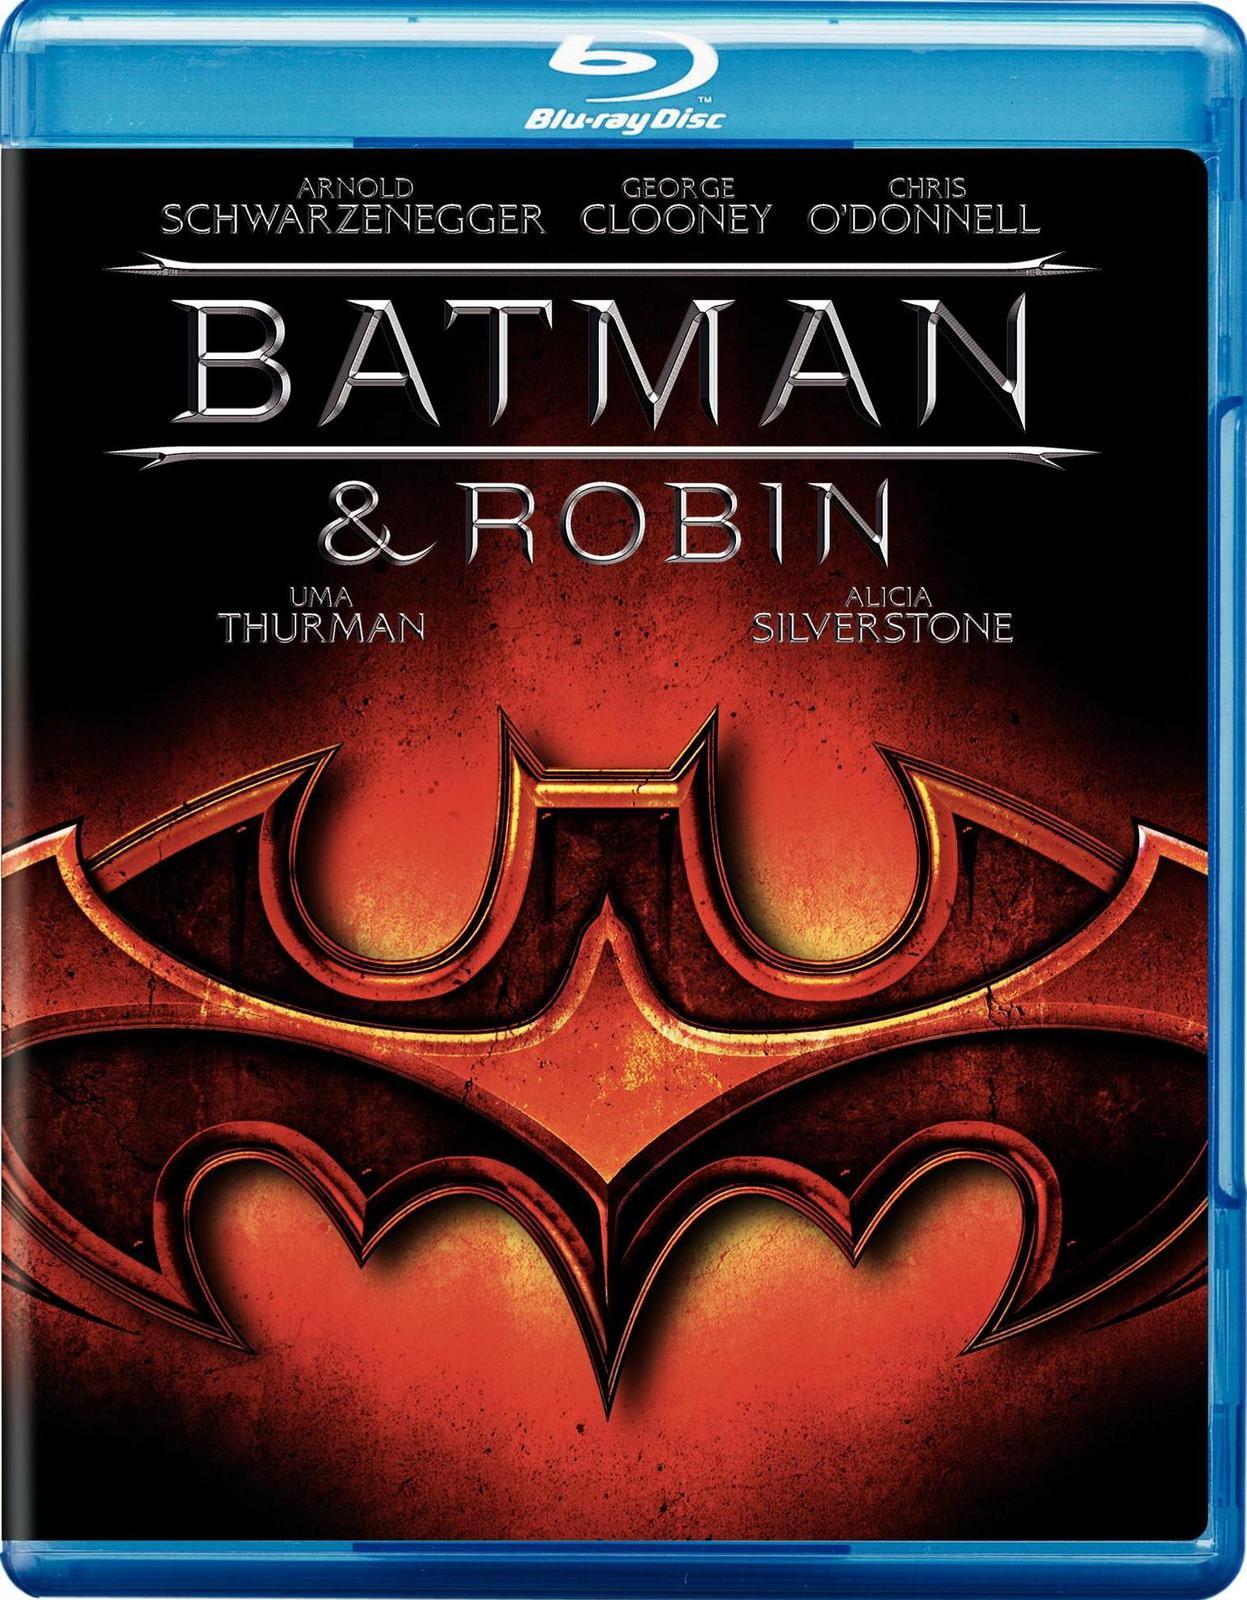 Batman & Robin on Blu-ray image